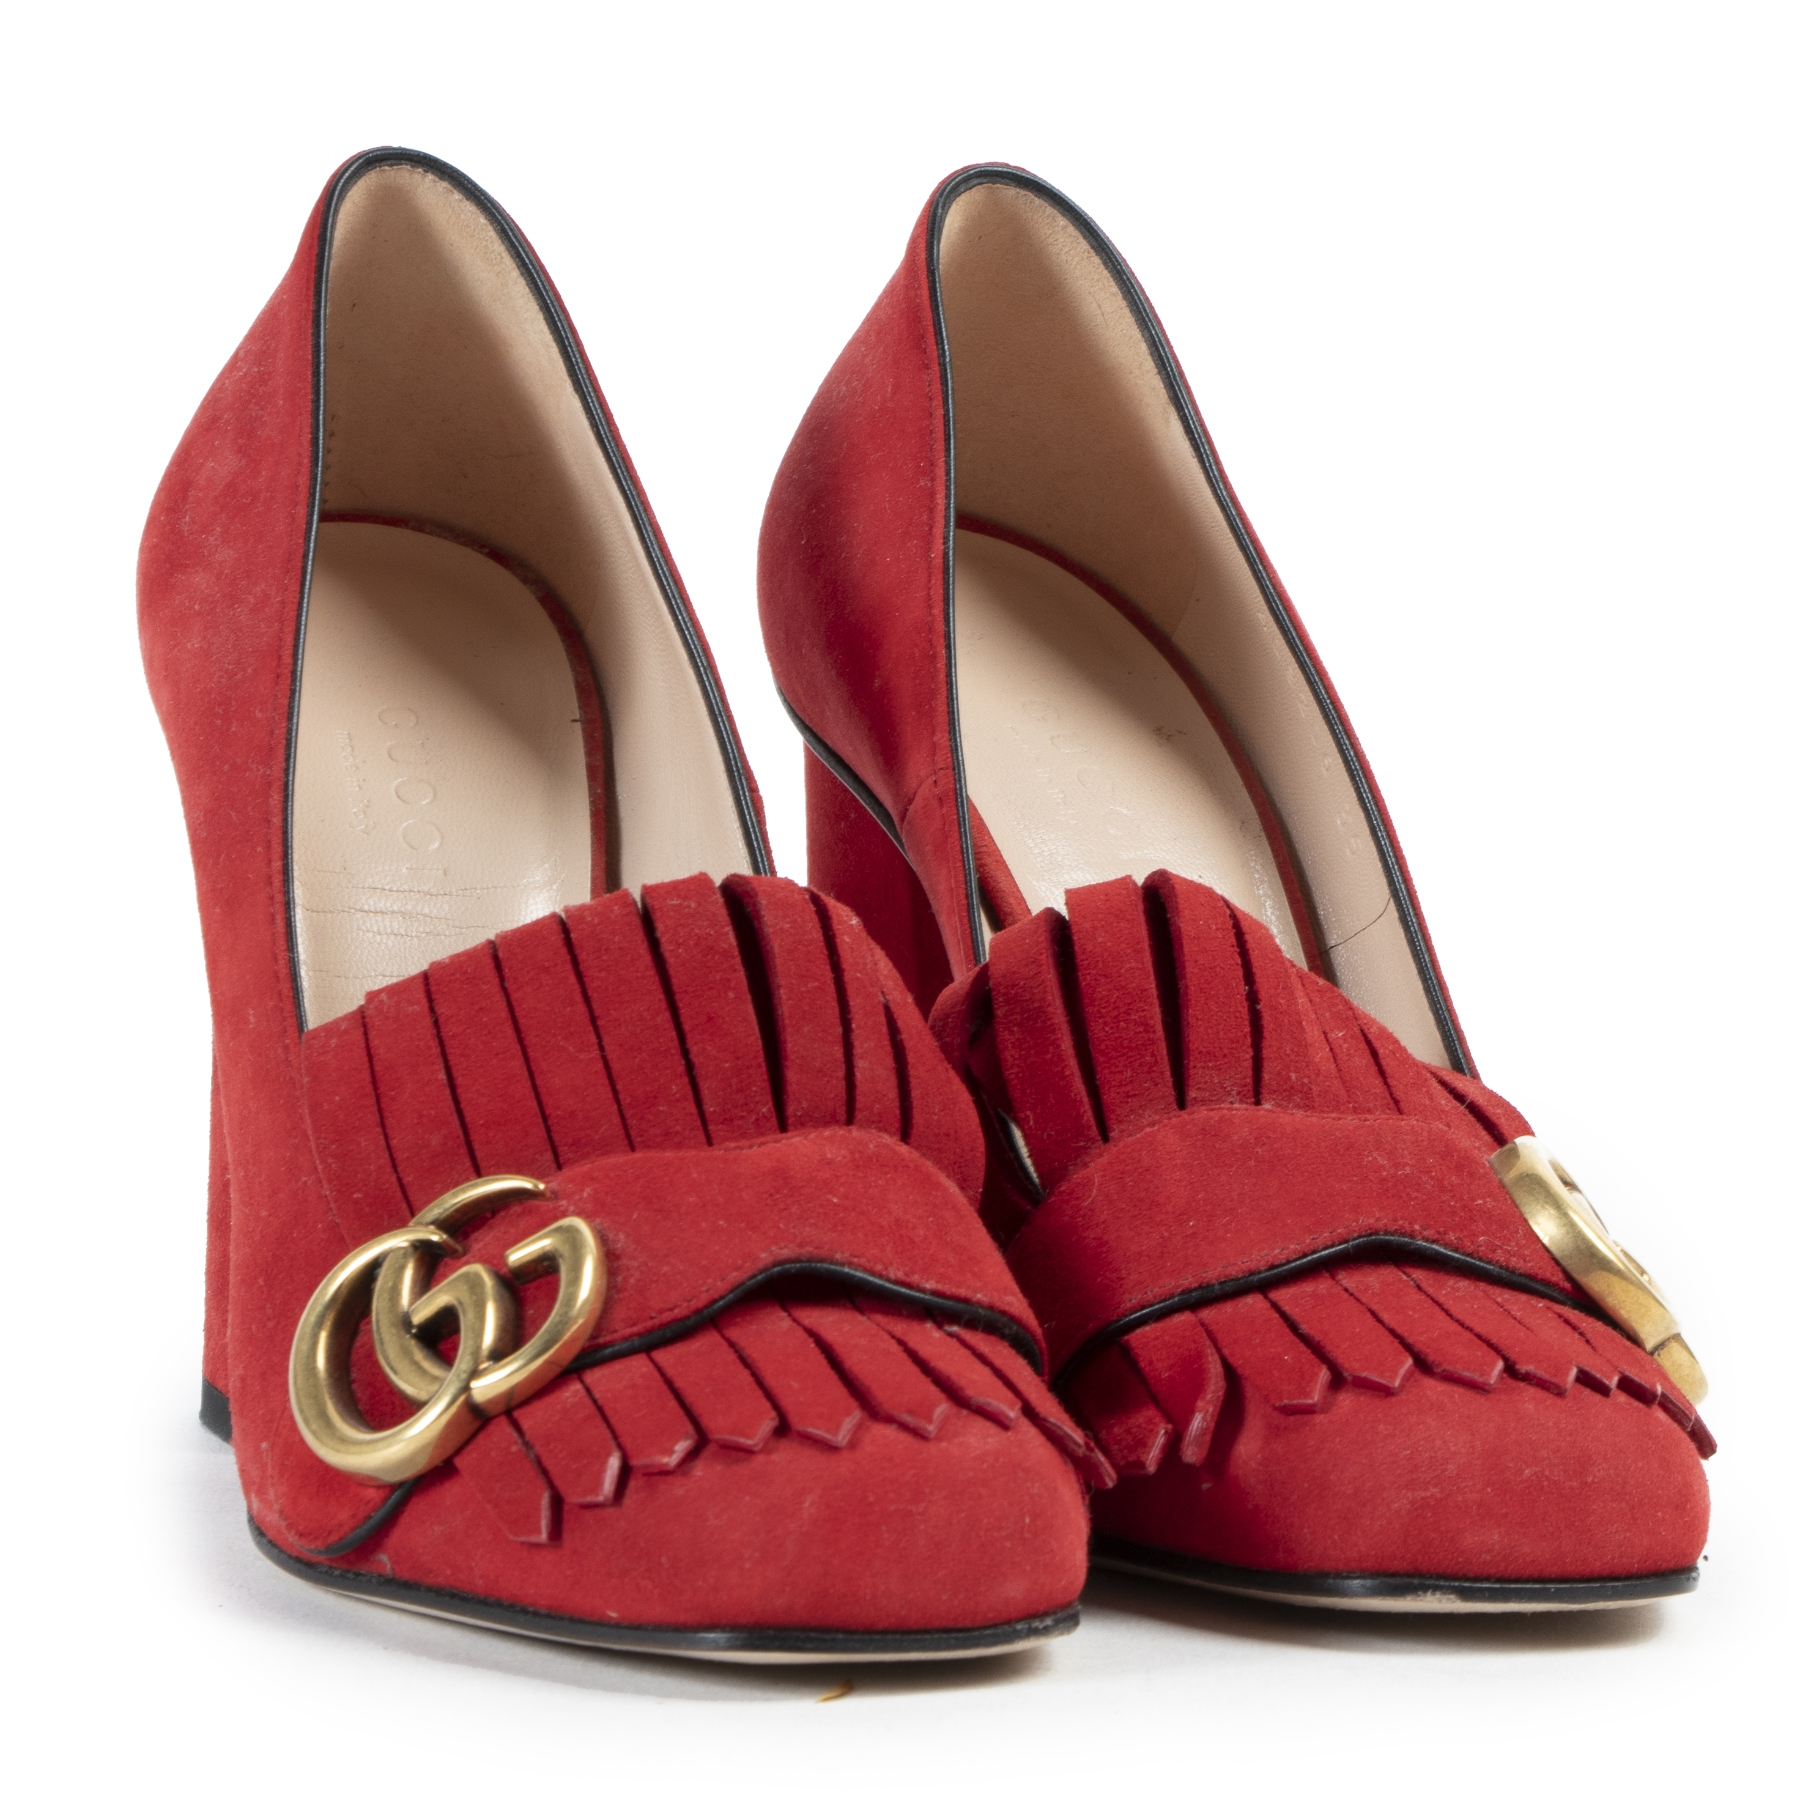 Gucci Marmont Red Suede Pumps